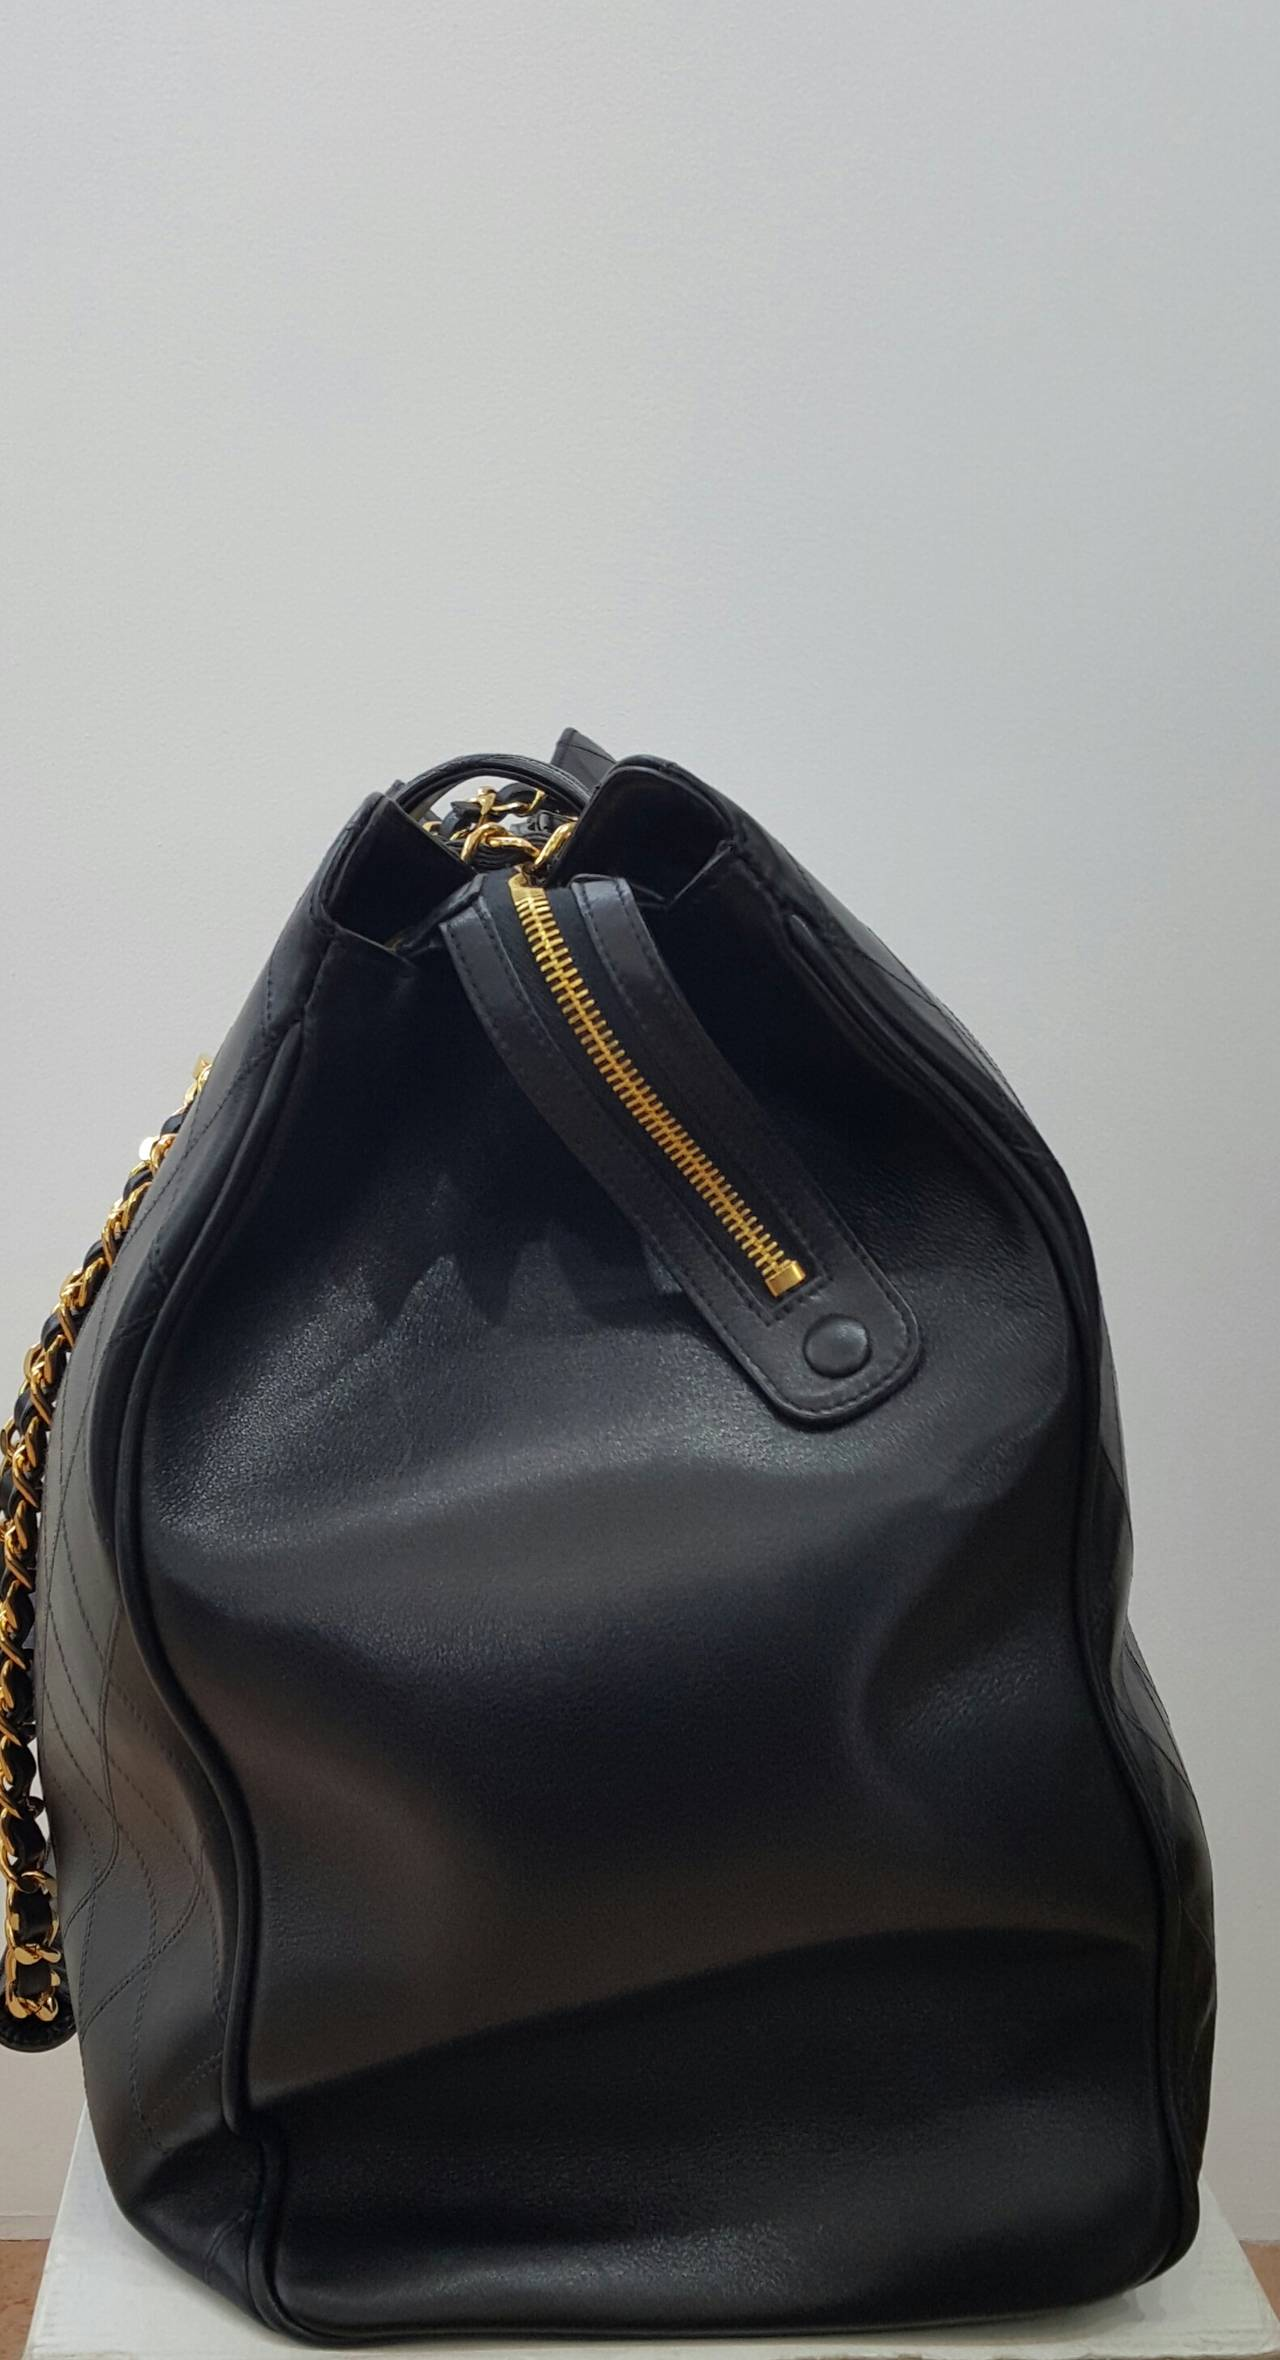 Chanel Black XL Jumbo Weekender Overnighter With Gold Hardware. In New never worn Condition For Sale In Delray Beach, FL